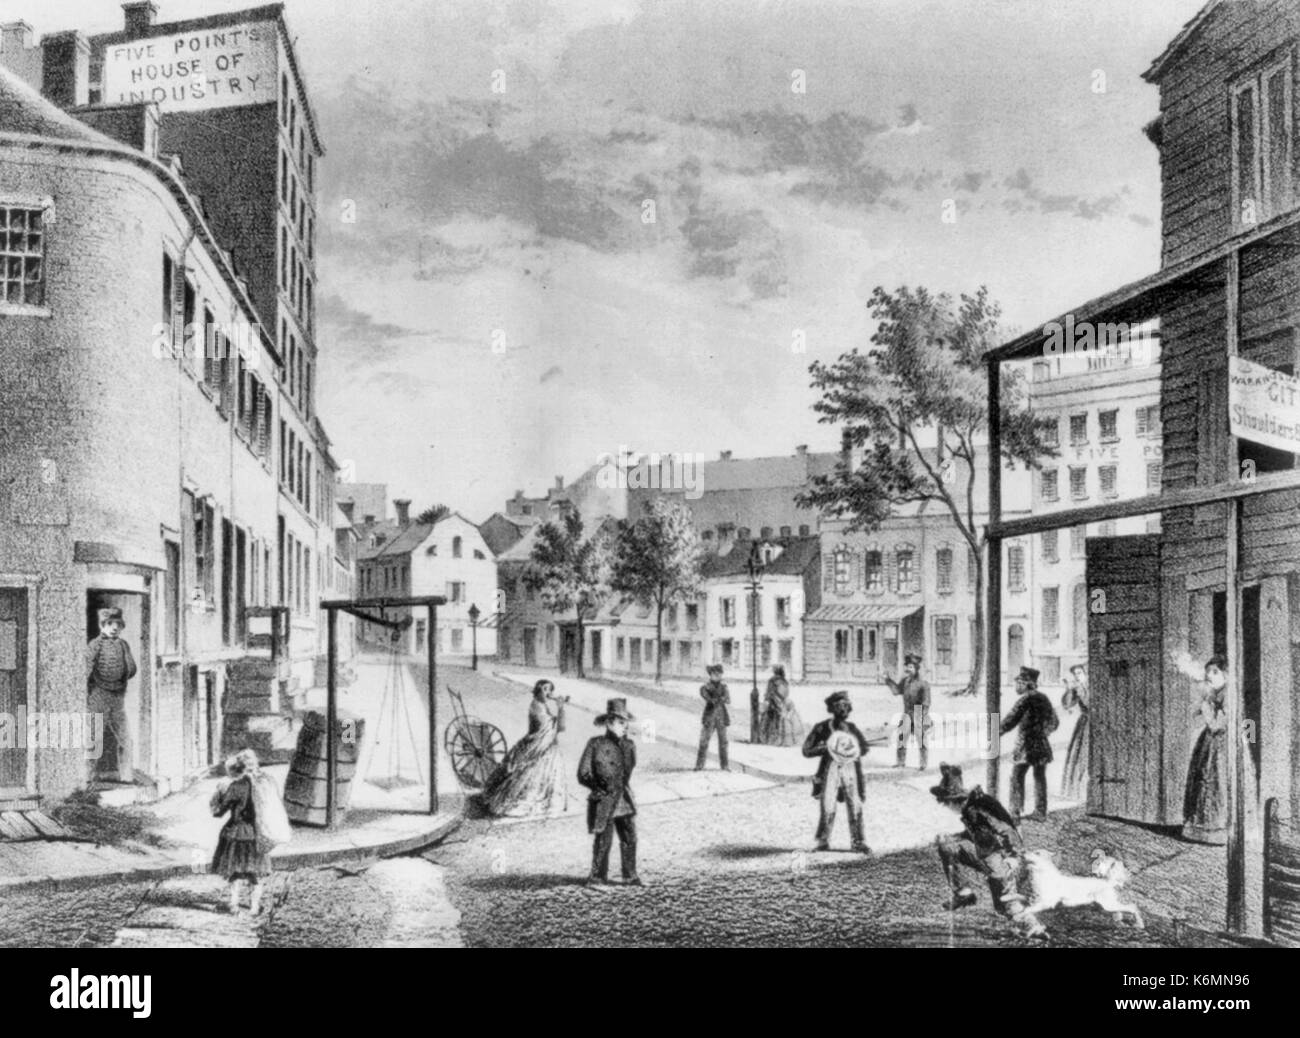 The Five Points in 1859. View taken from the corner of Worth & Little Water St. - Five Points being a house of industry - New York City. - Stock Image